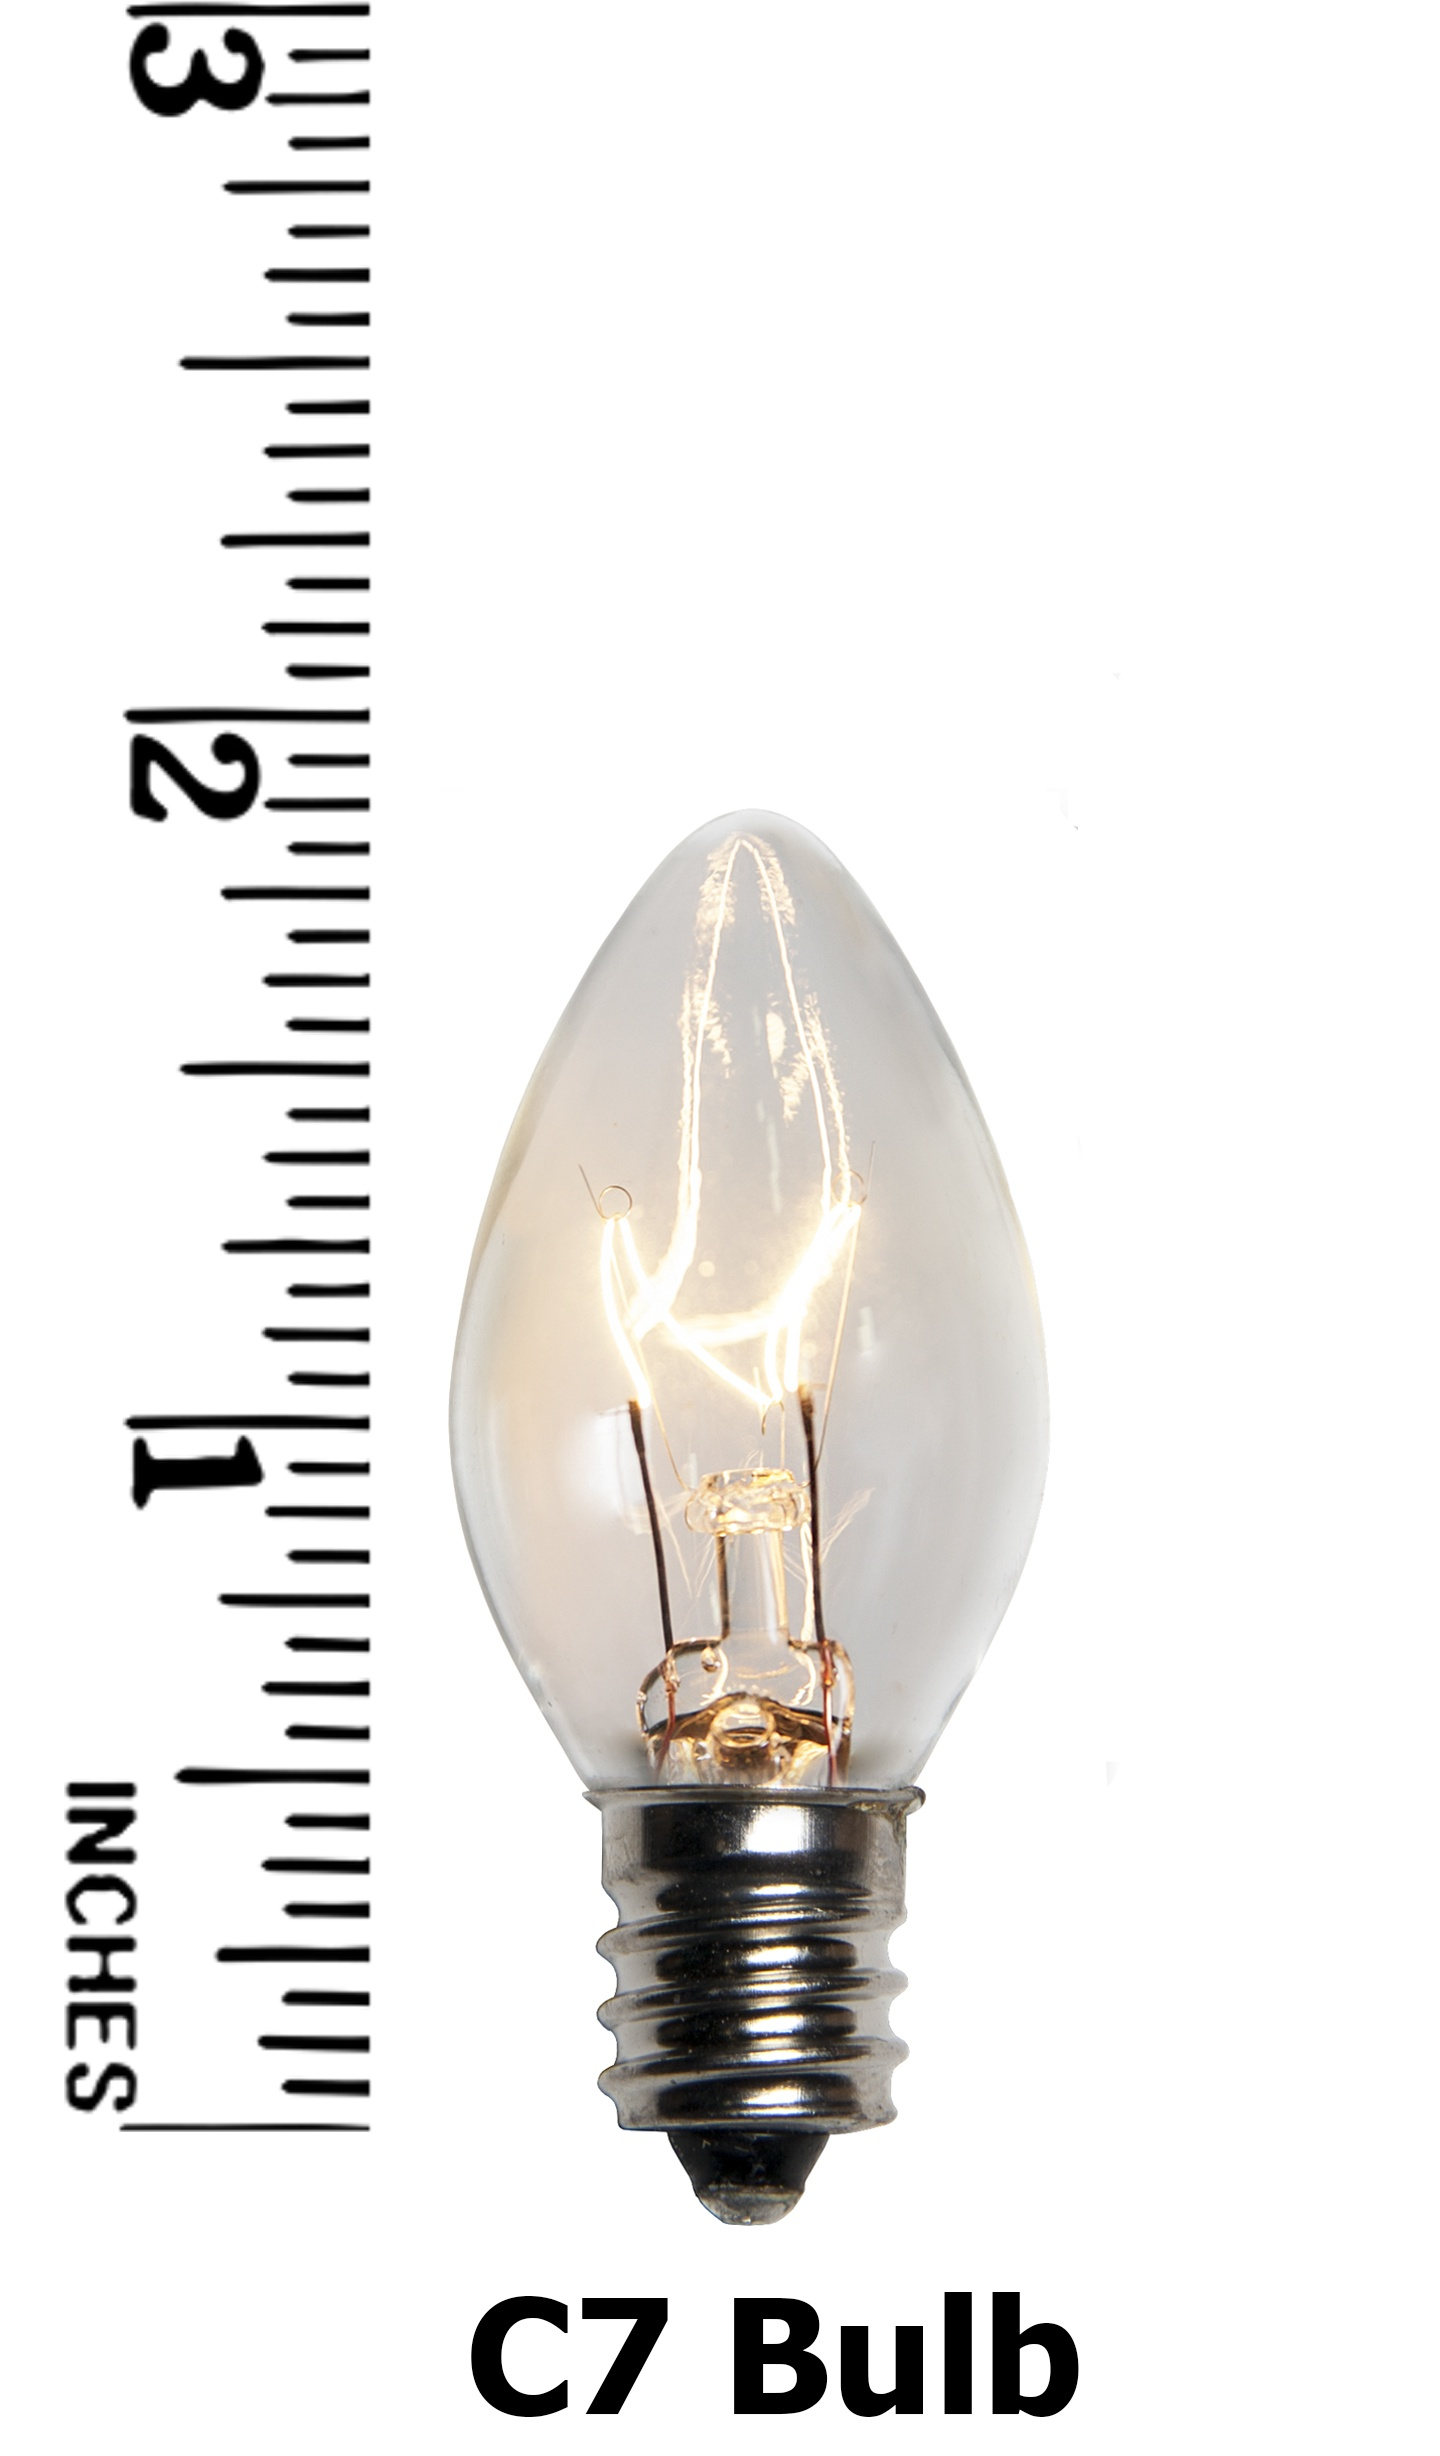 C7 Clear Bulb Measurements